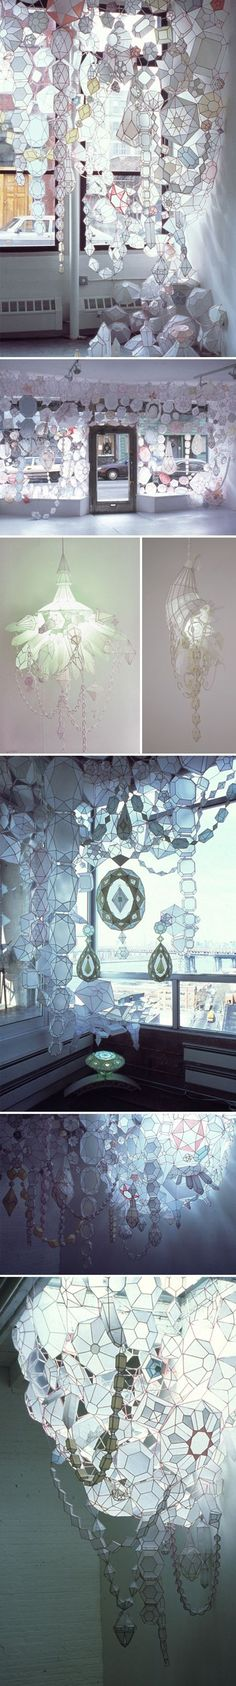 stunning paper work  Inspiration Design From Justfordecor.com - The Online Home and Decor Store